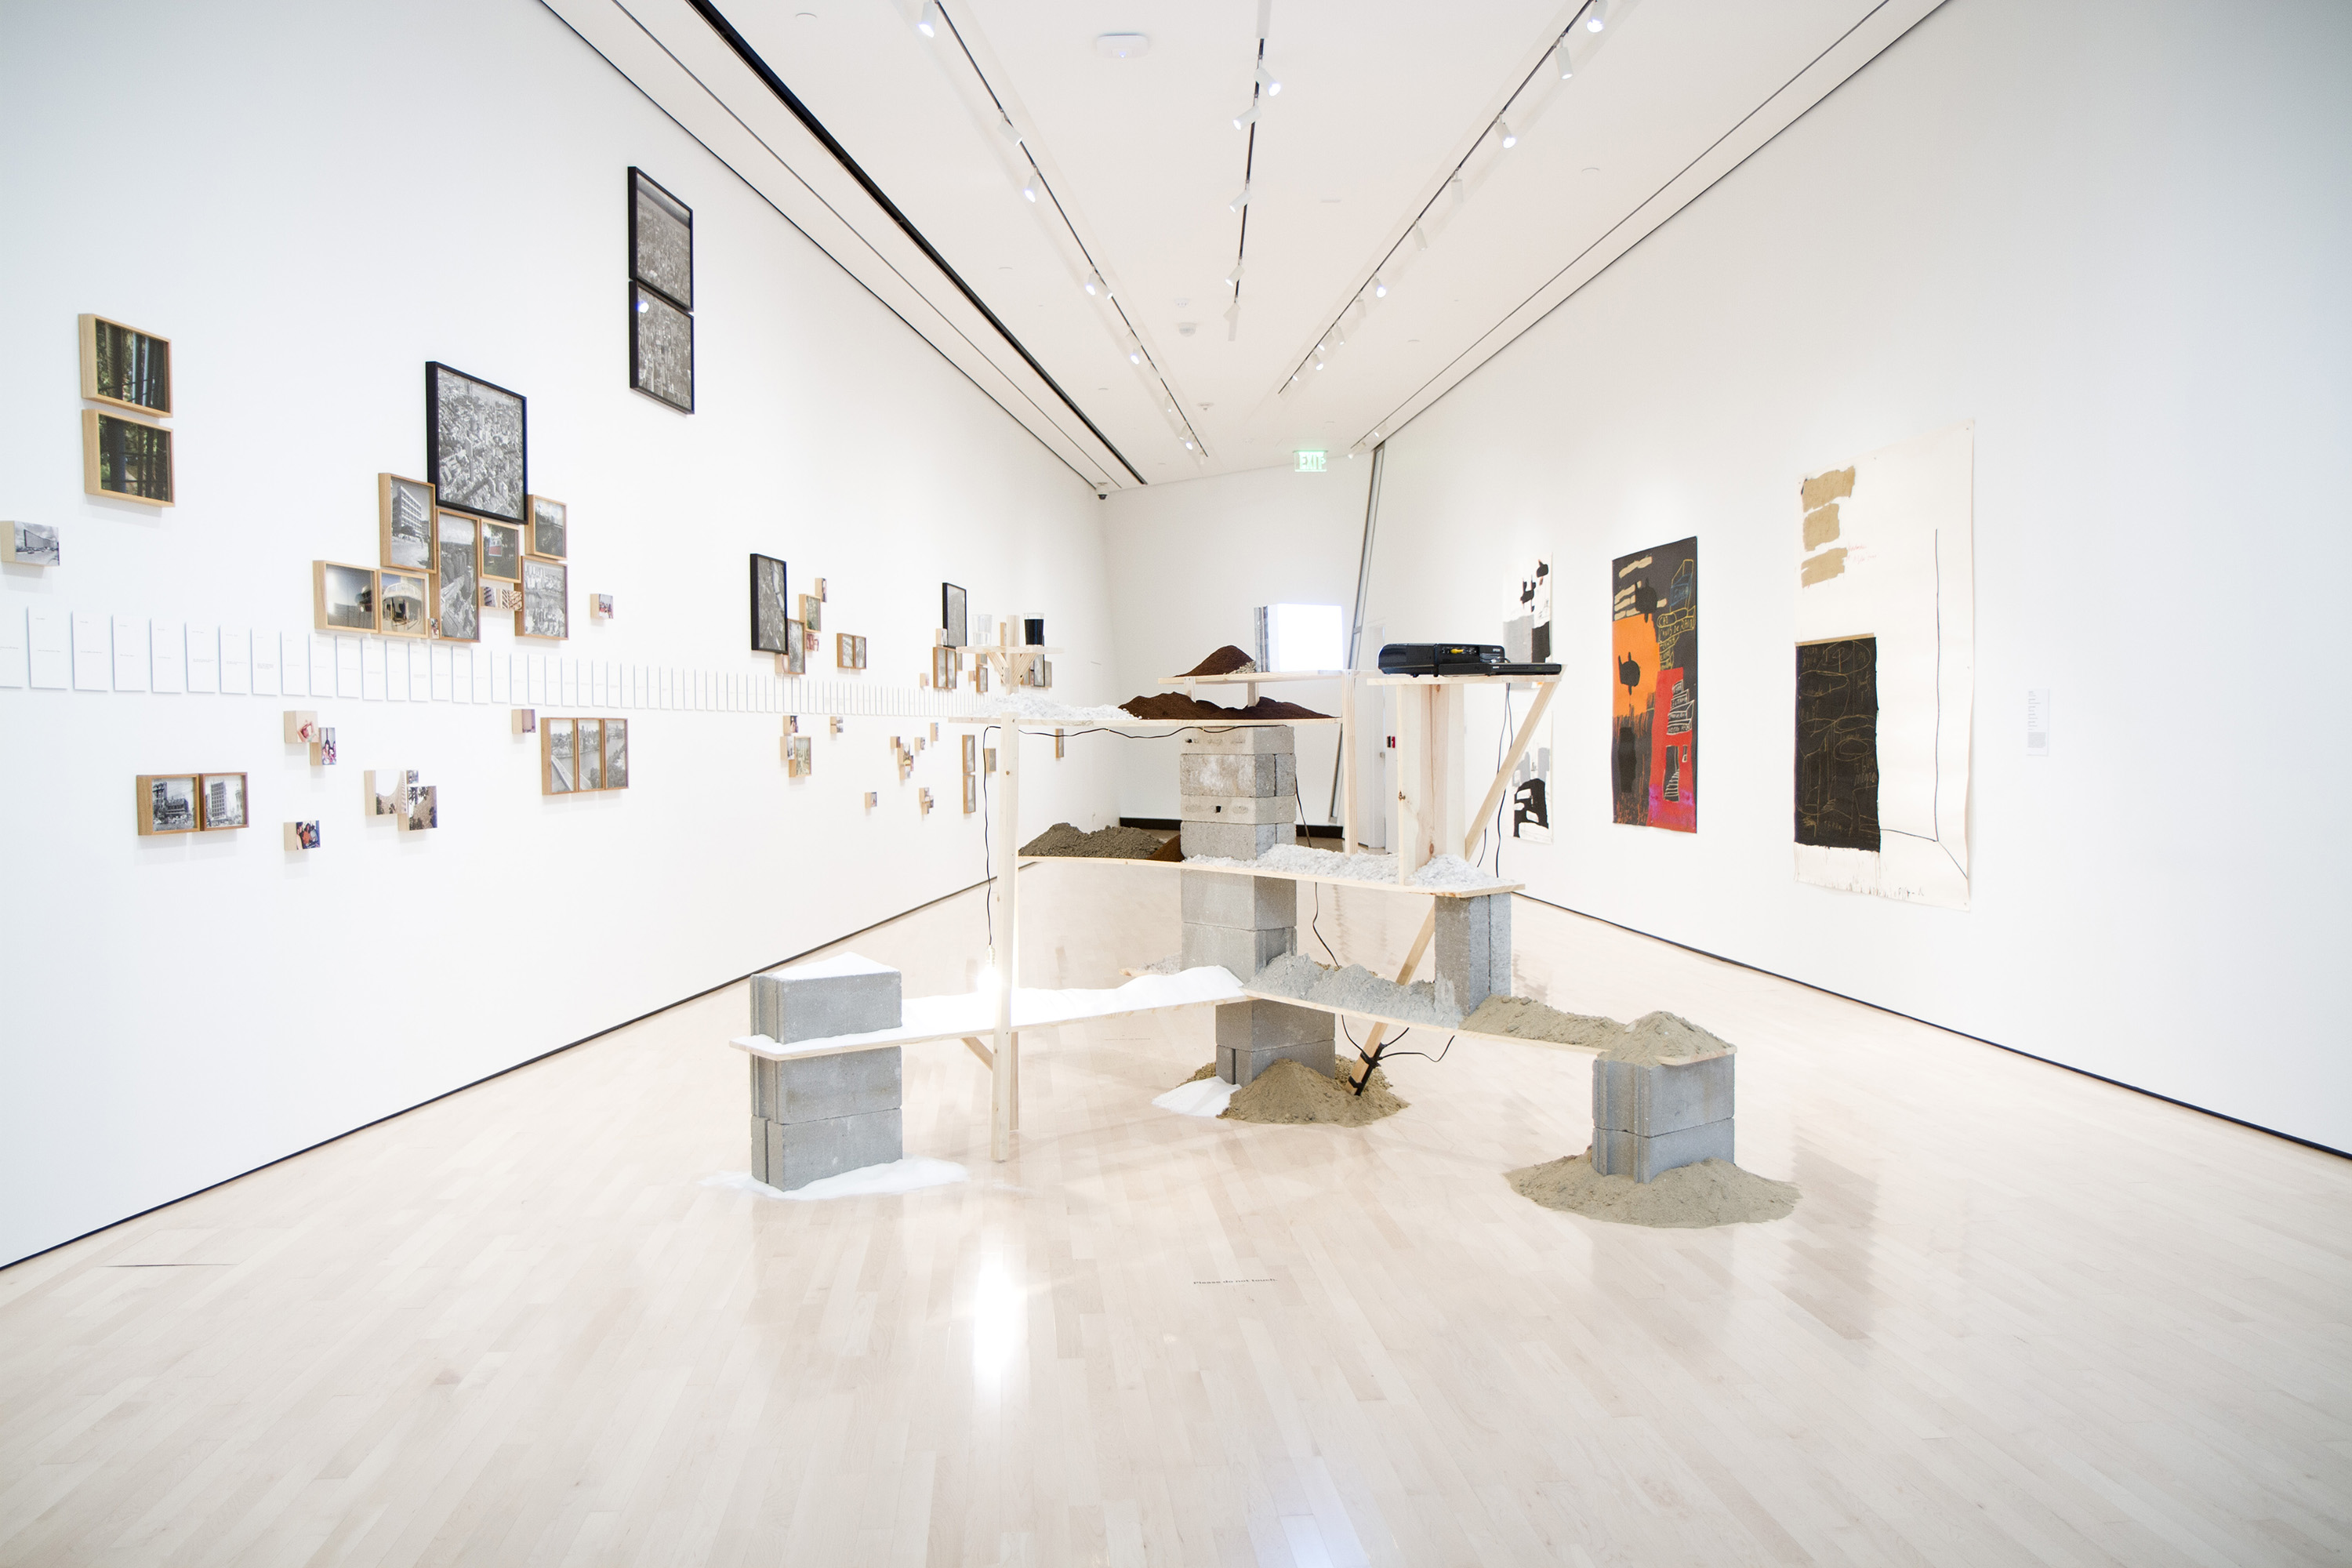 <i>Blind Field</i>, installation view at the Eli and Edythe Broad Art Museum at Michigan State University, 2013. Photo: Eat Pomegranate Photography